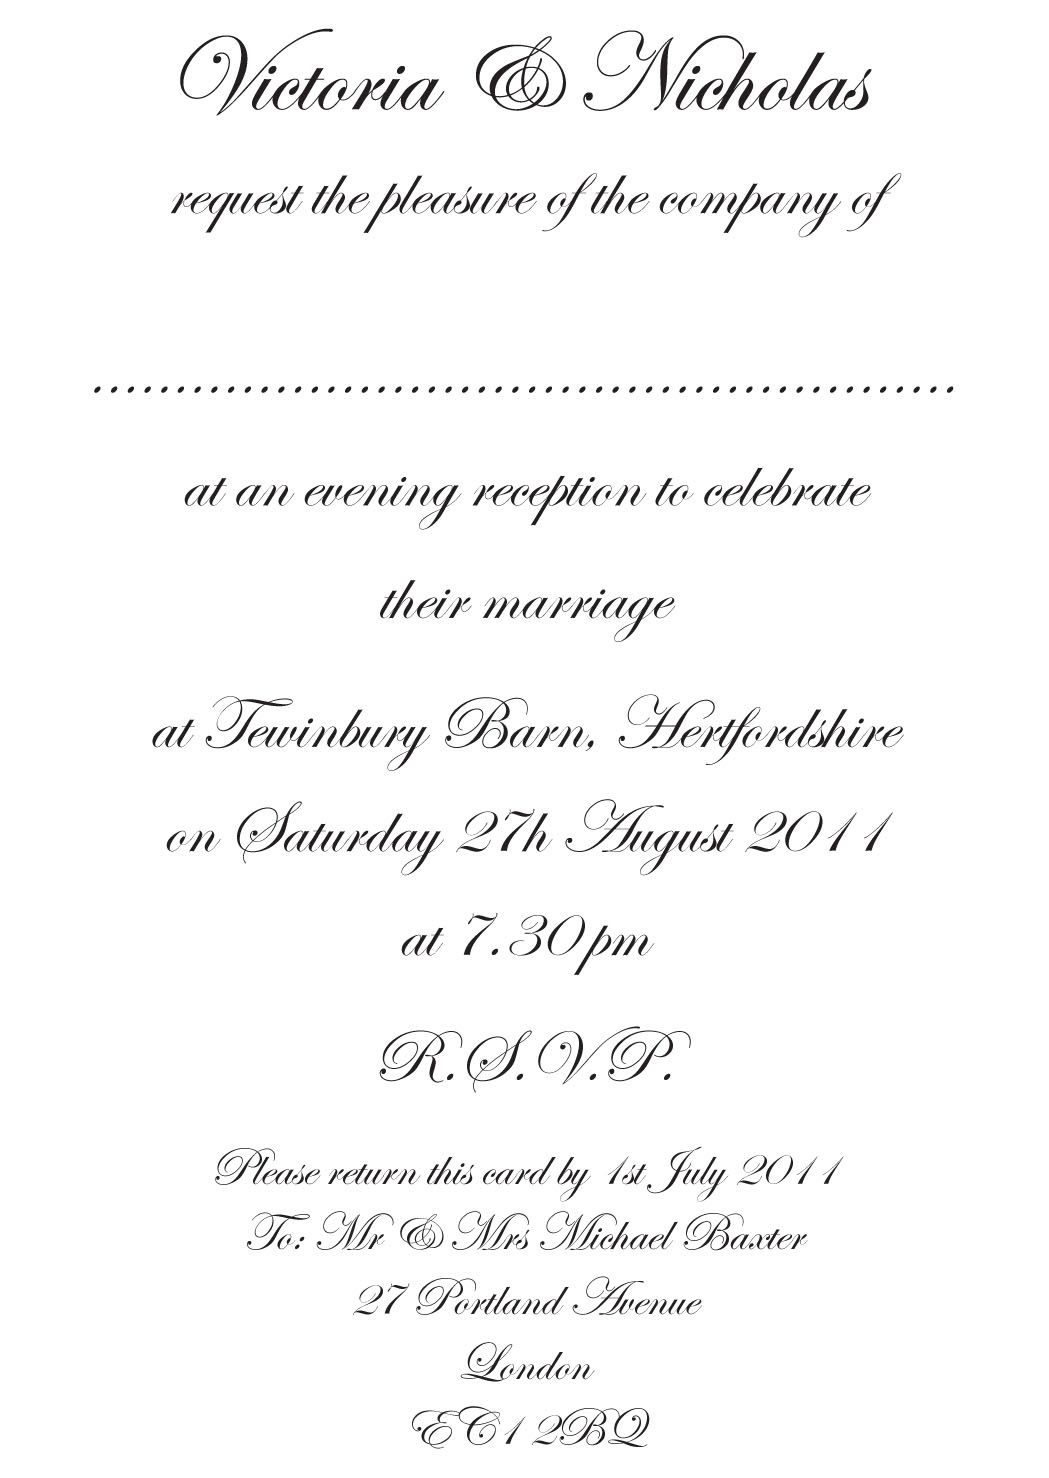 Wedding invitation message2 wedding pinterest invitation wedding invitation message2 stopboris Images